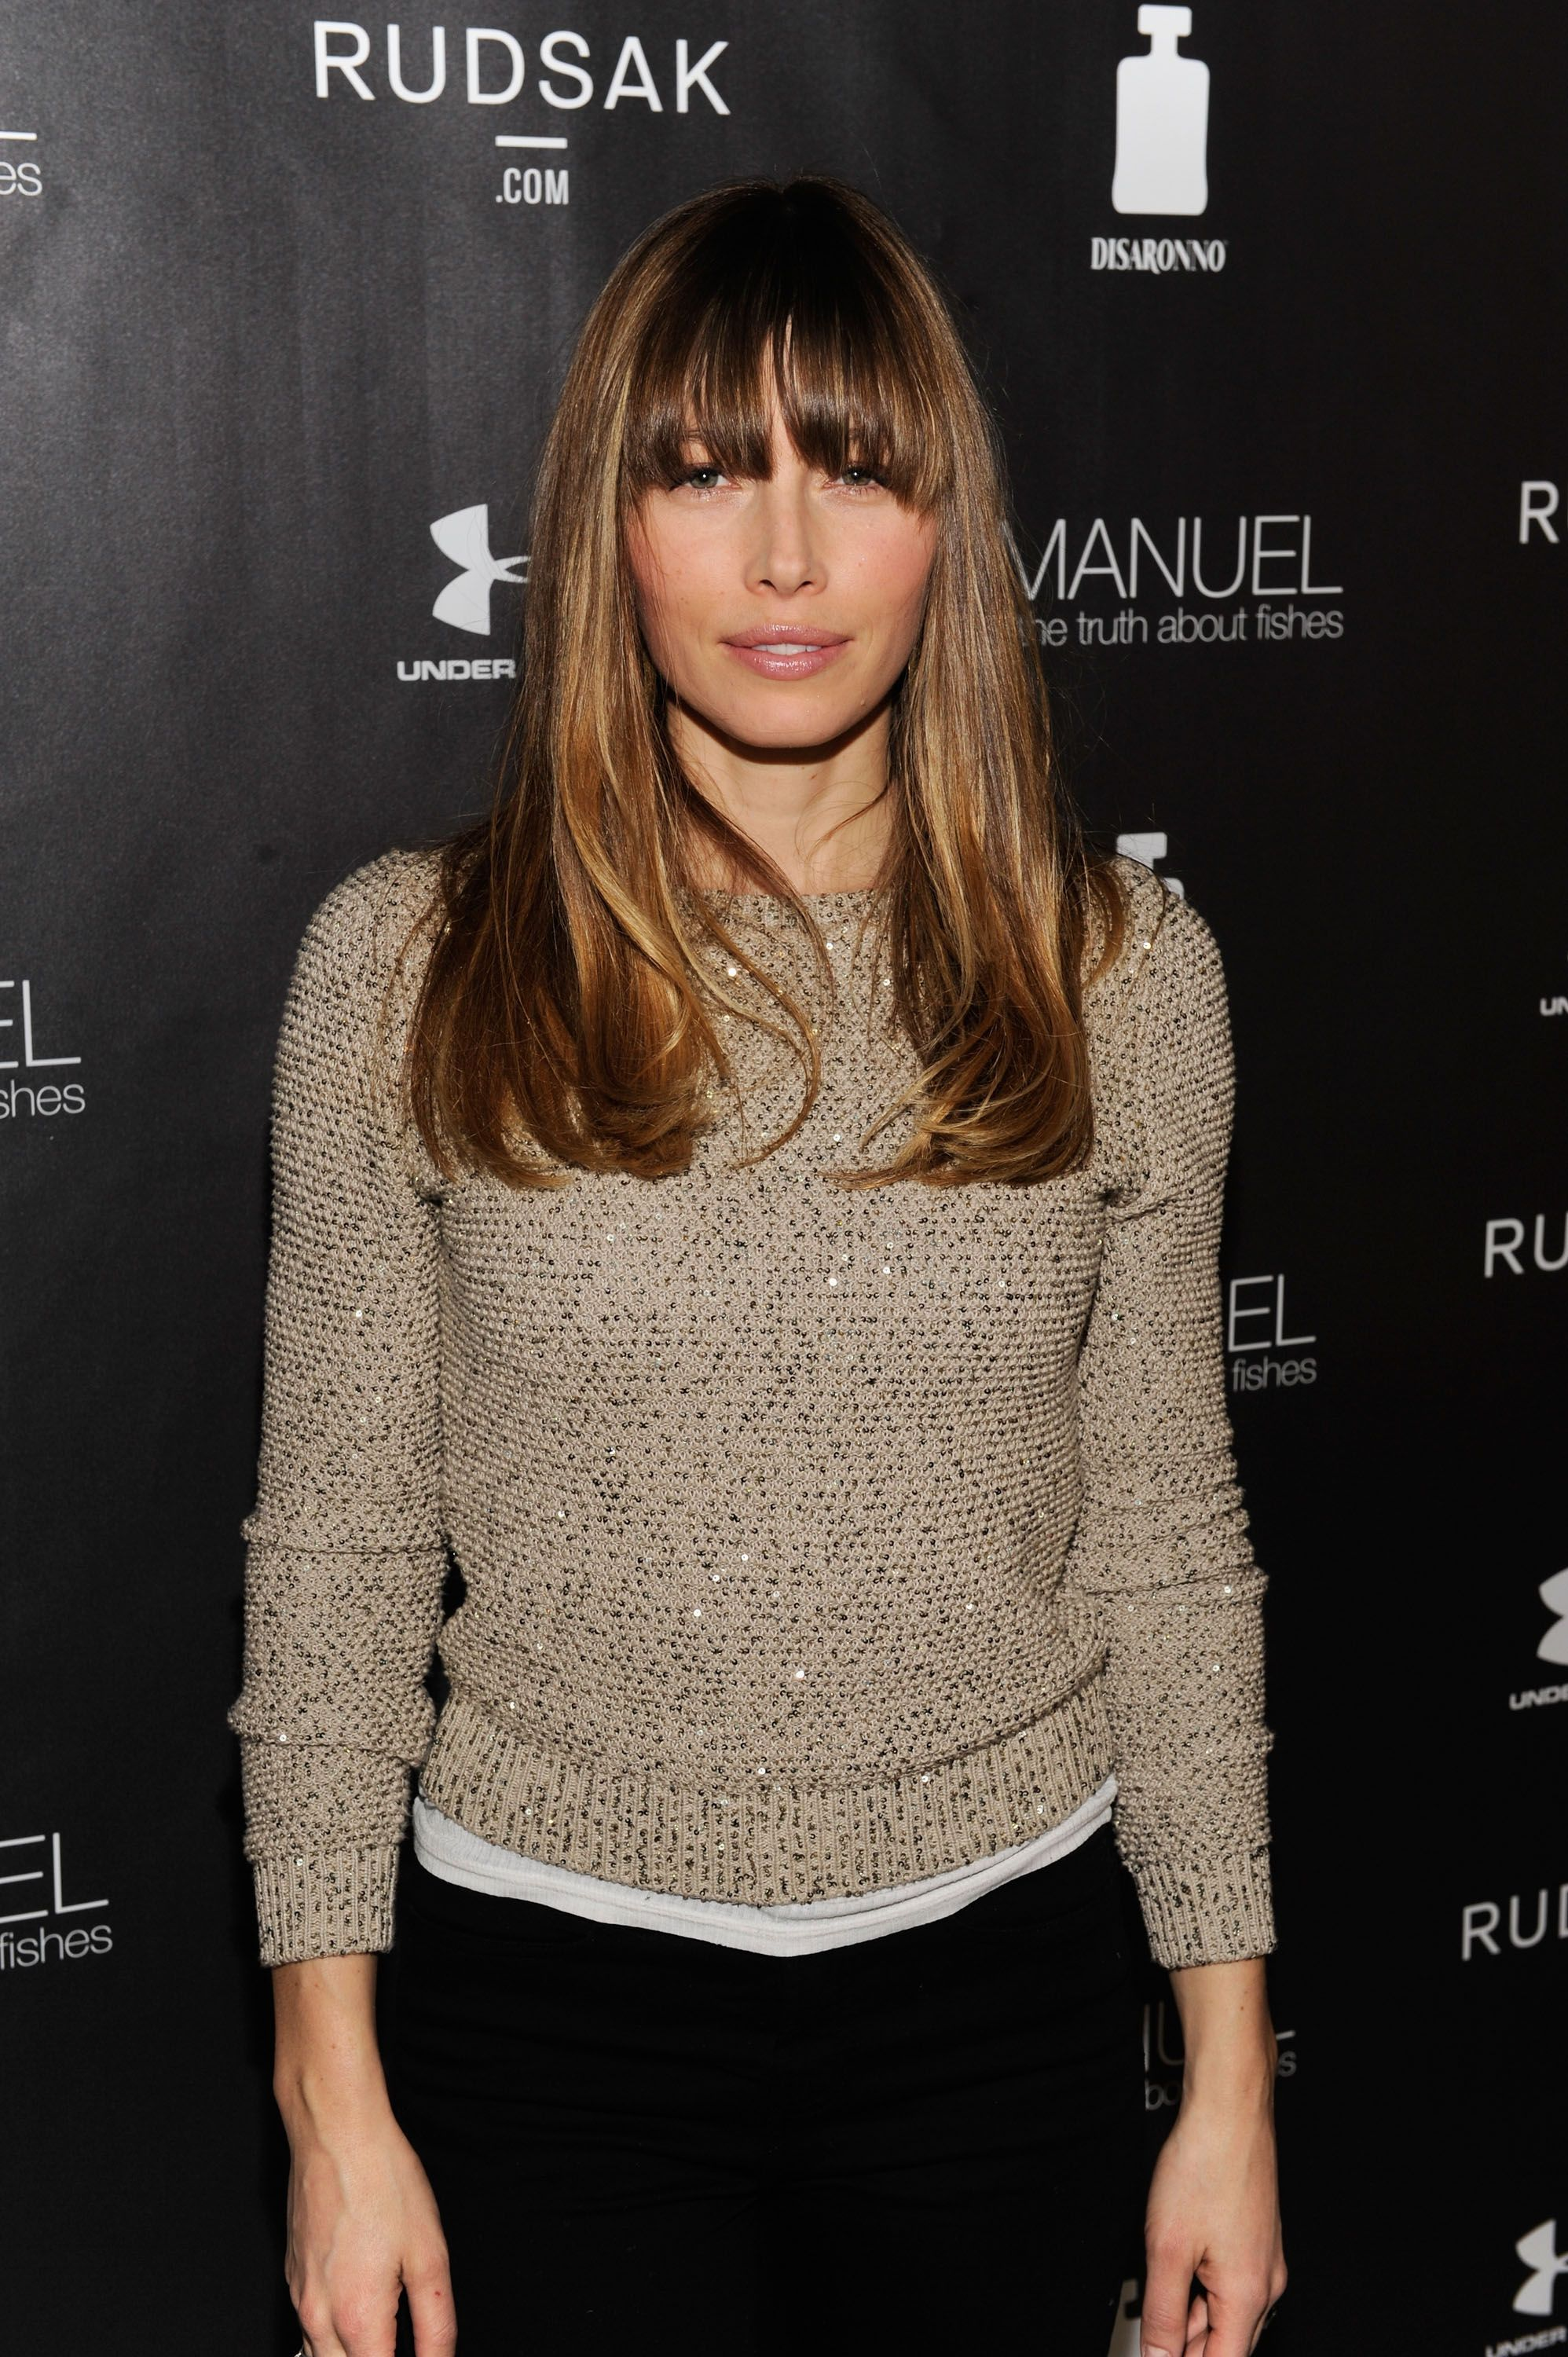 40 Best Hairstyles for Thin Hair - Haircuts for Women With ...